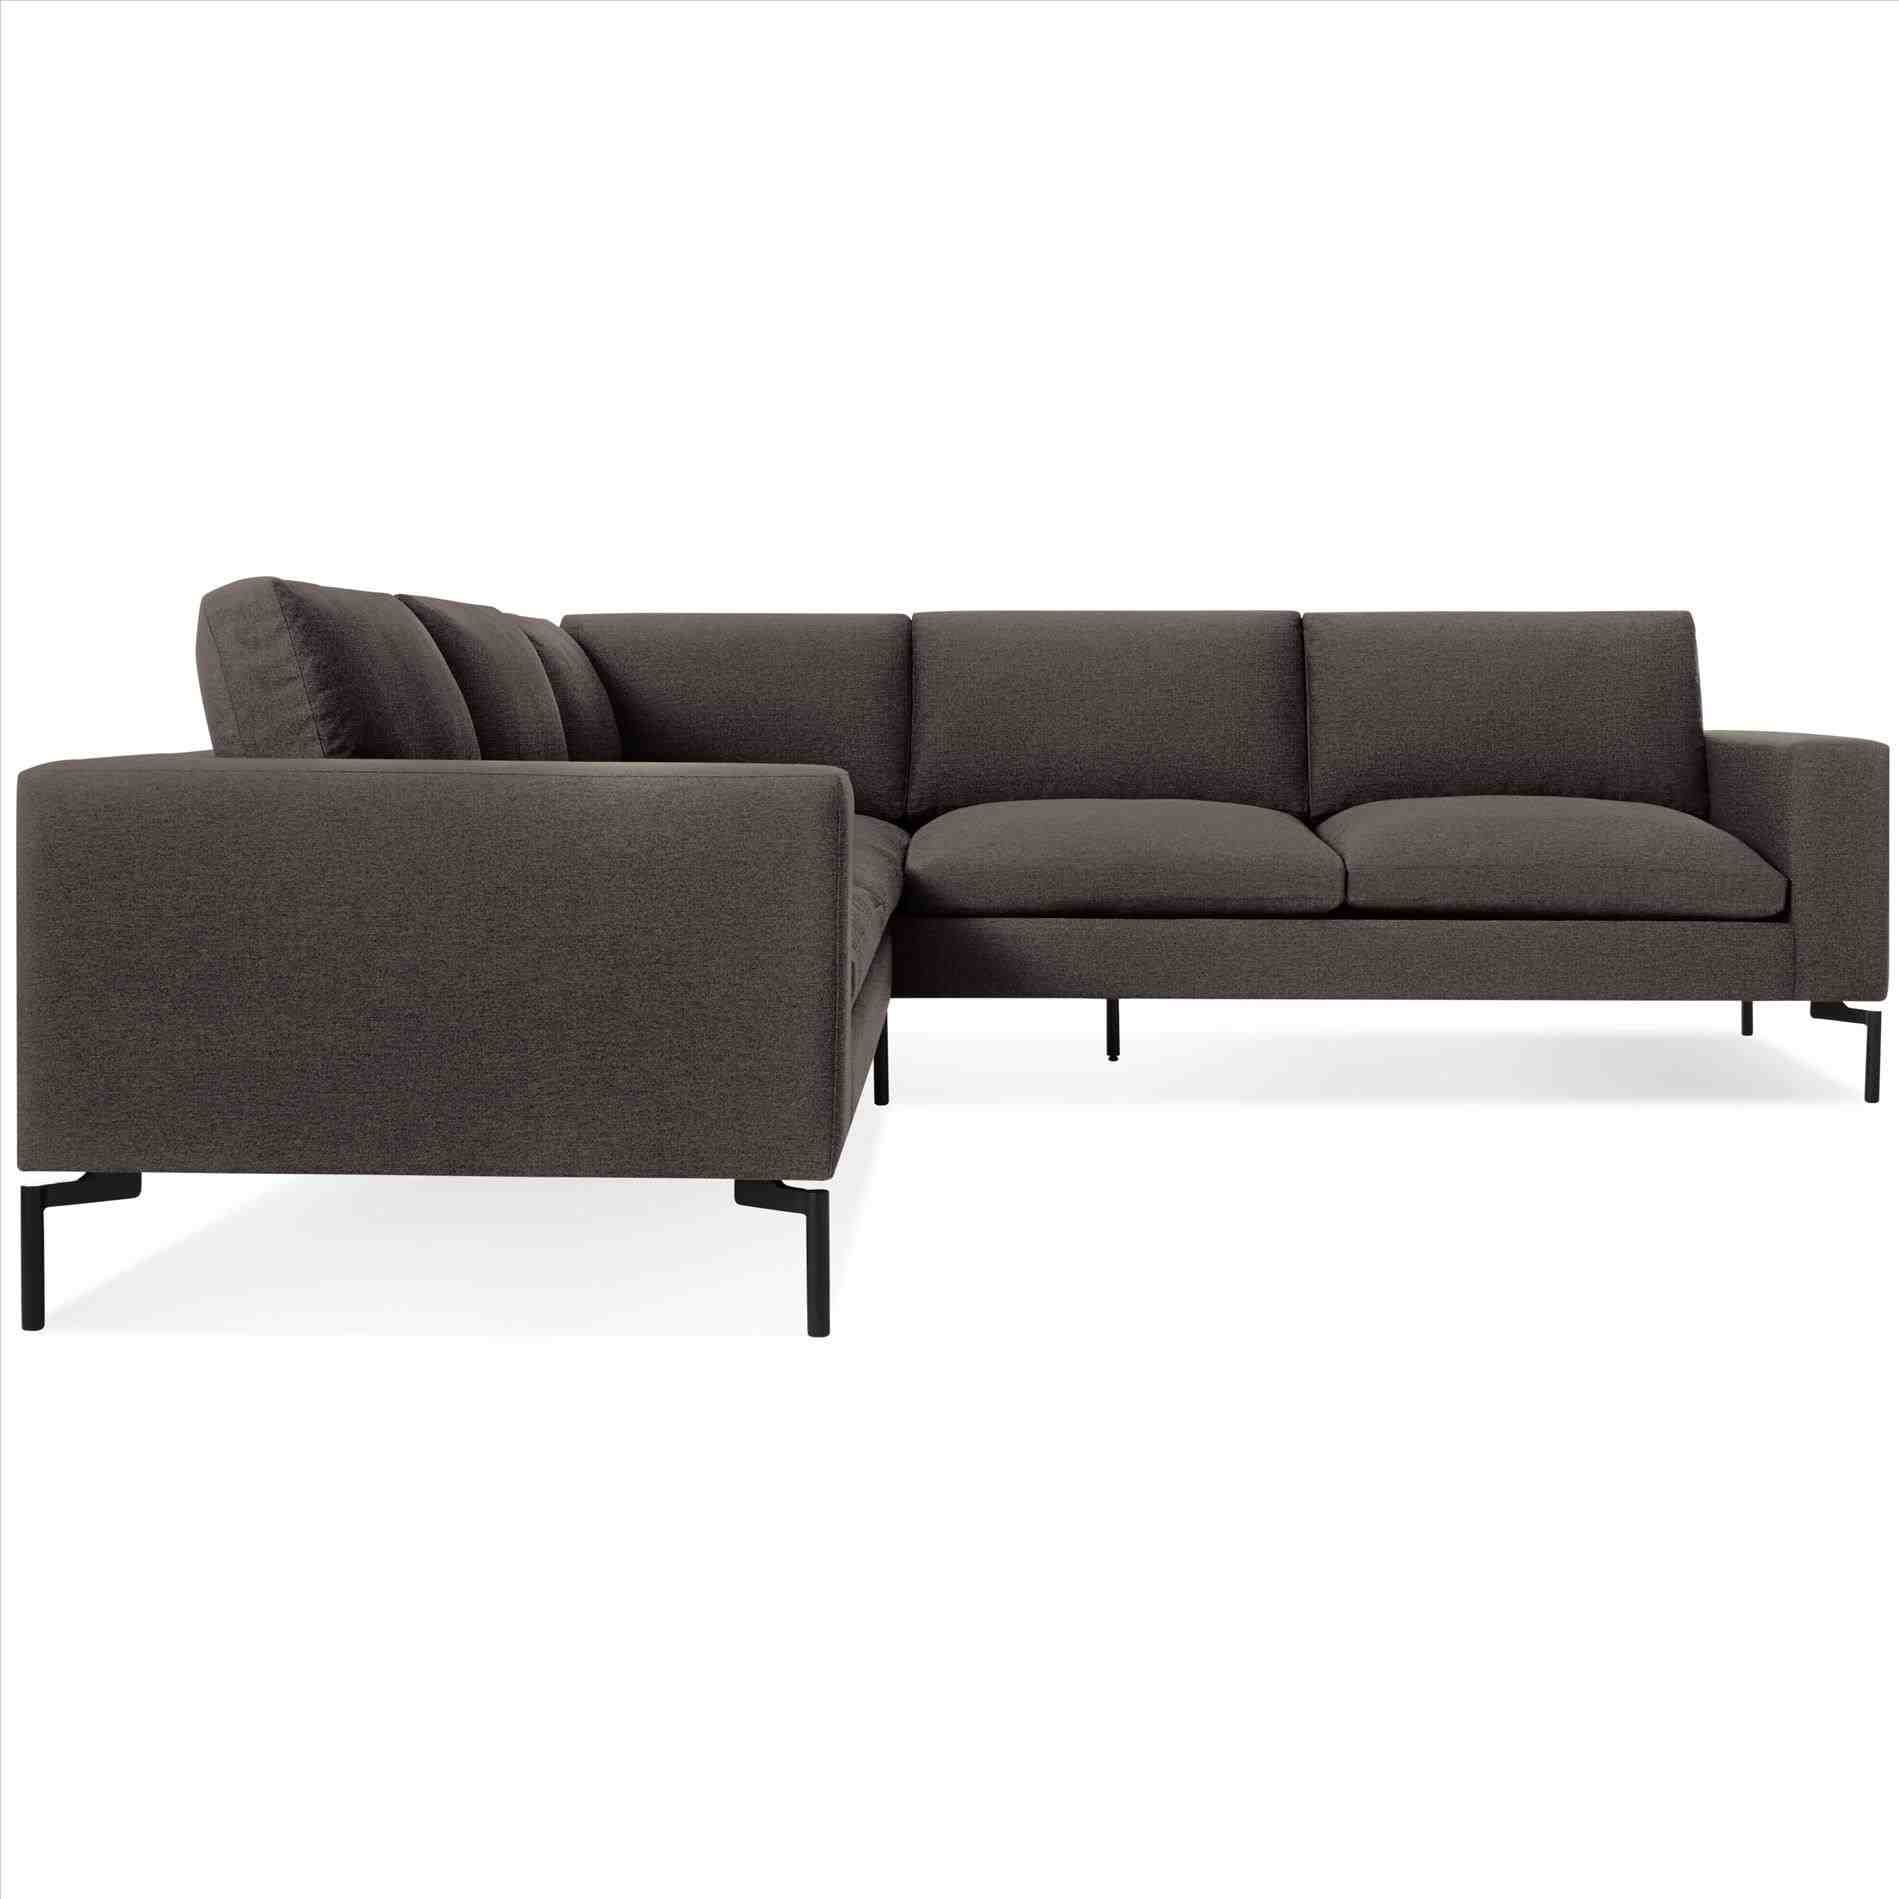 Admirable Cheap Leather Sofas Toronto Gallery Of Leather Armchair Ncnpc Chair Design For Home Ncnpcorg